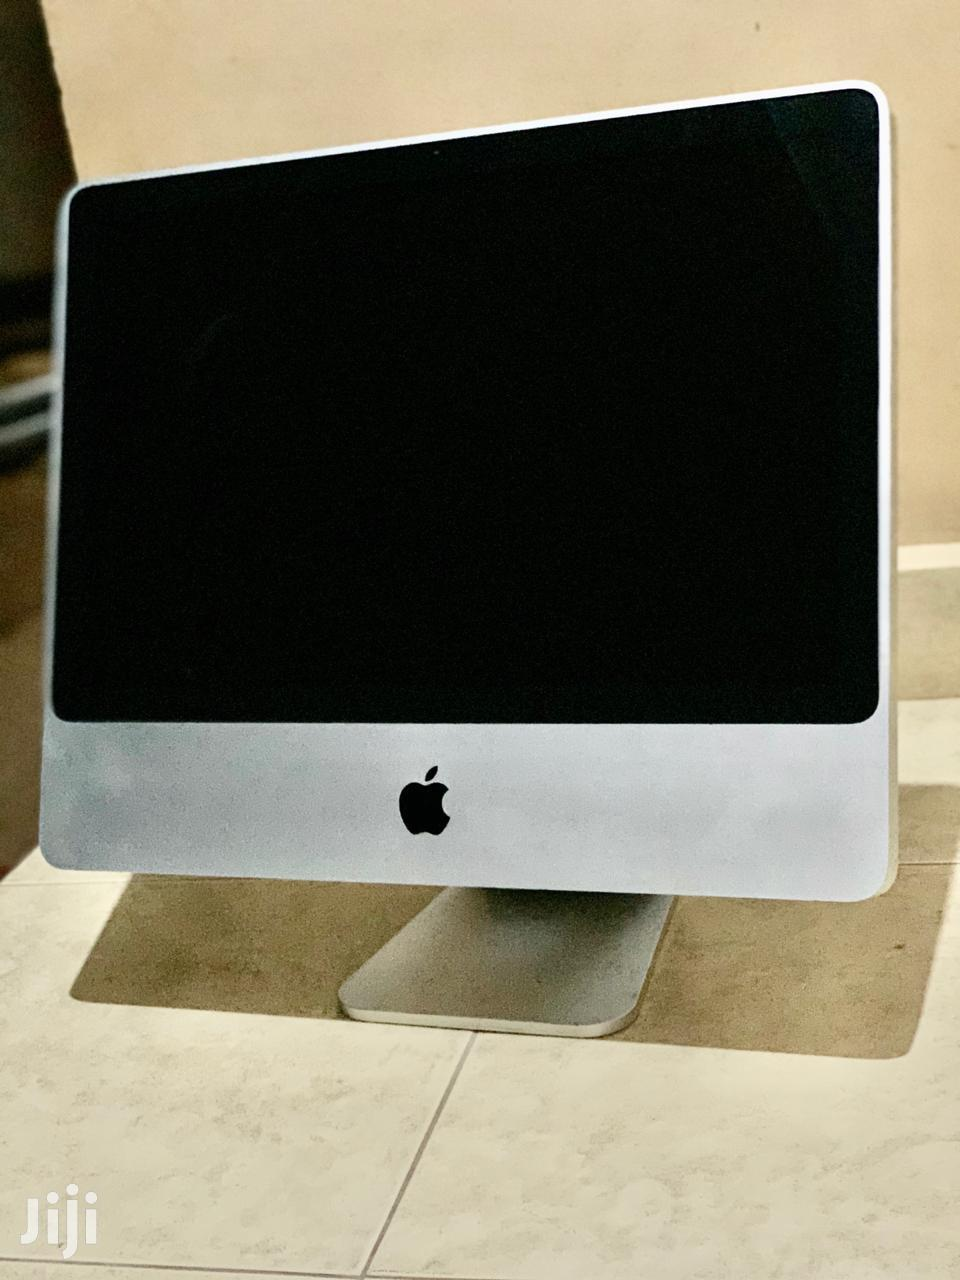 Desktop Computer Apple iMac 4GB Intel Core 2 Duo HDD 500GB | Laptops & Computers for sale in Kampala, Central Region, Uganda